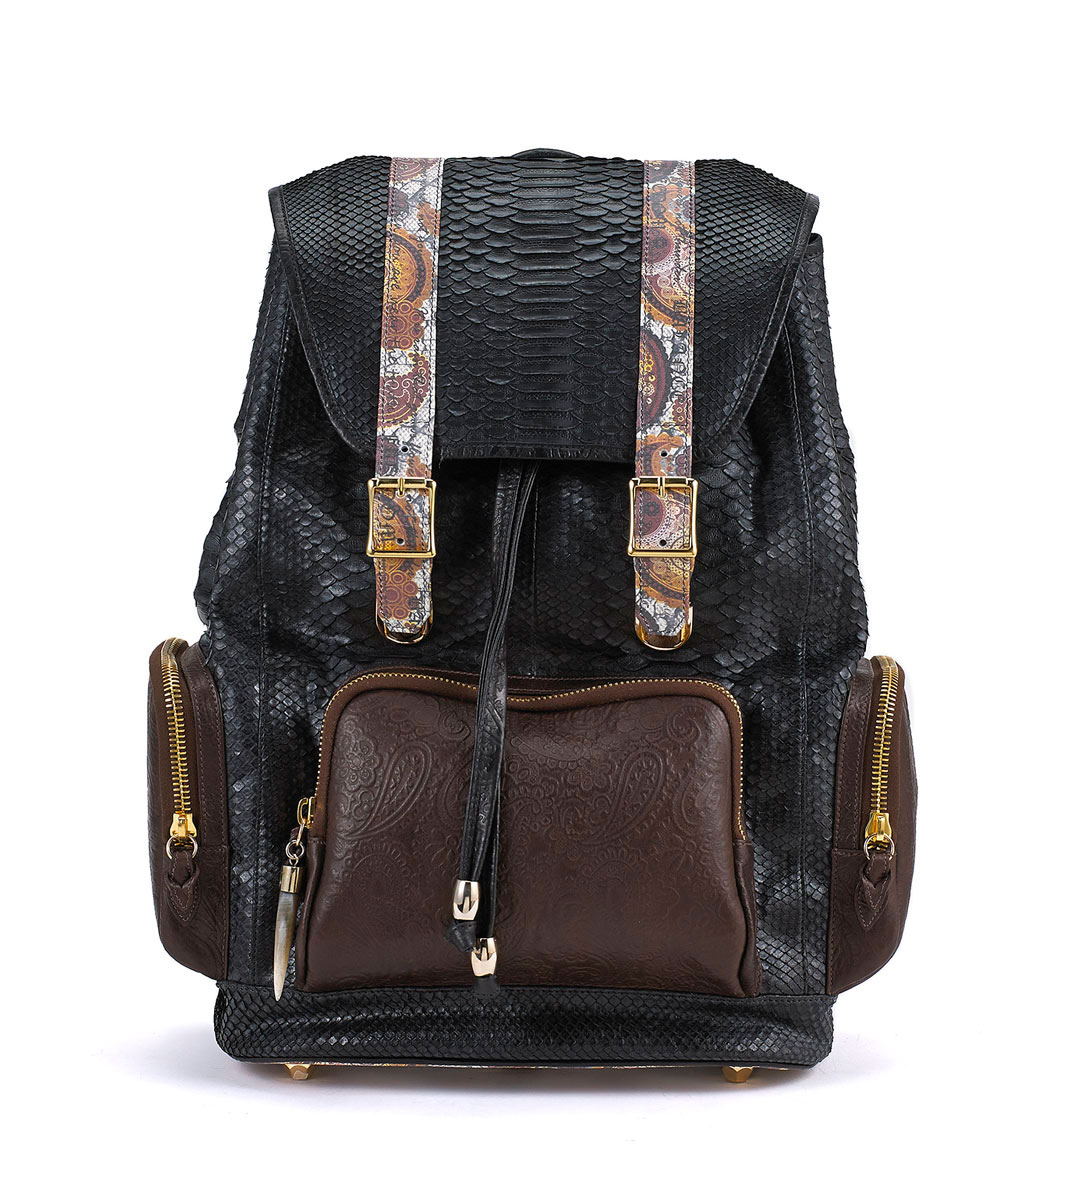 Ganesh Black Python with Brown Leather Pockets Backpack